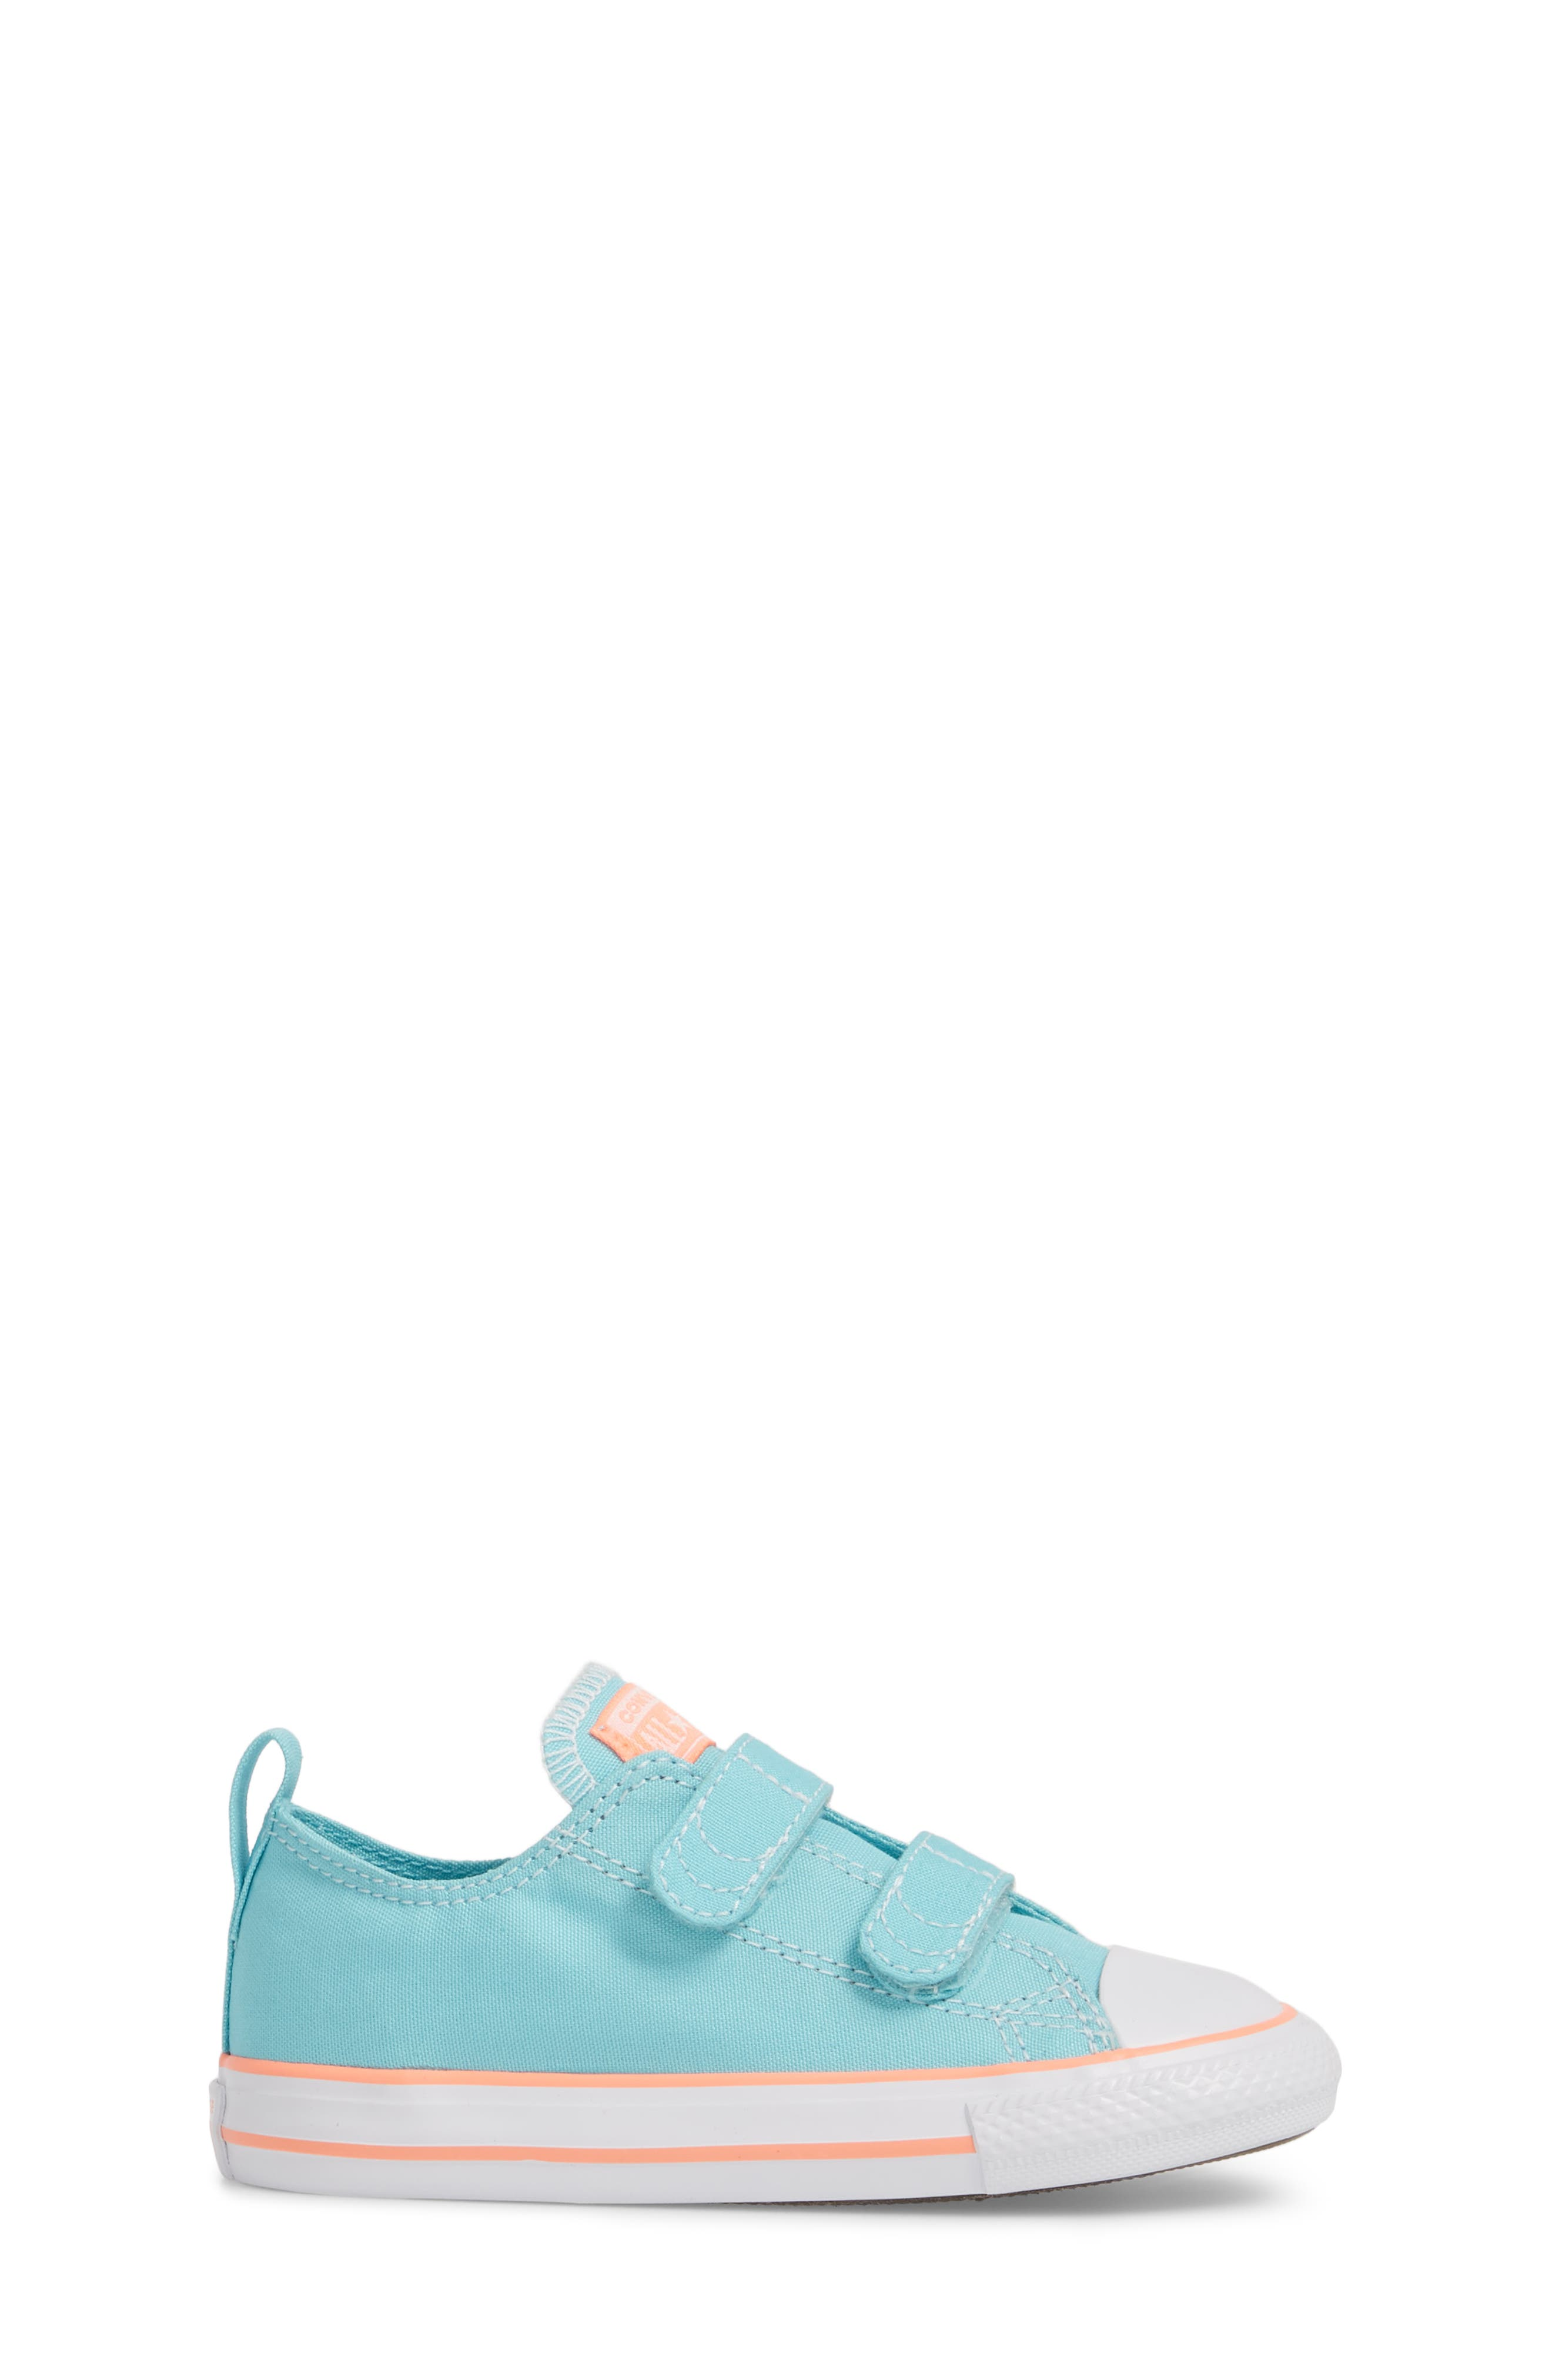 All Star<sup>®</sup> 2V Low Top Sneaker,                             Alternate thumbnail 3, color,                             486